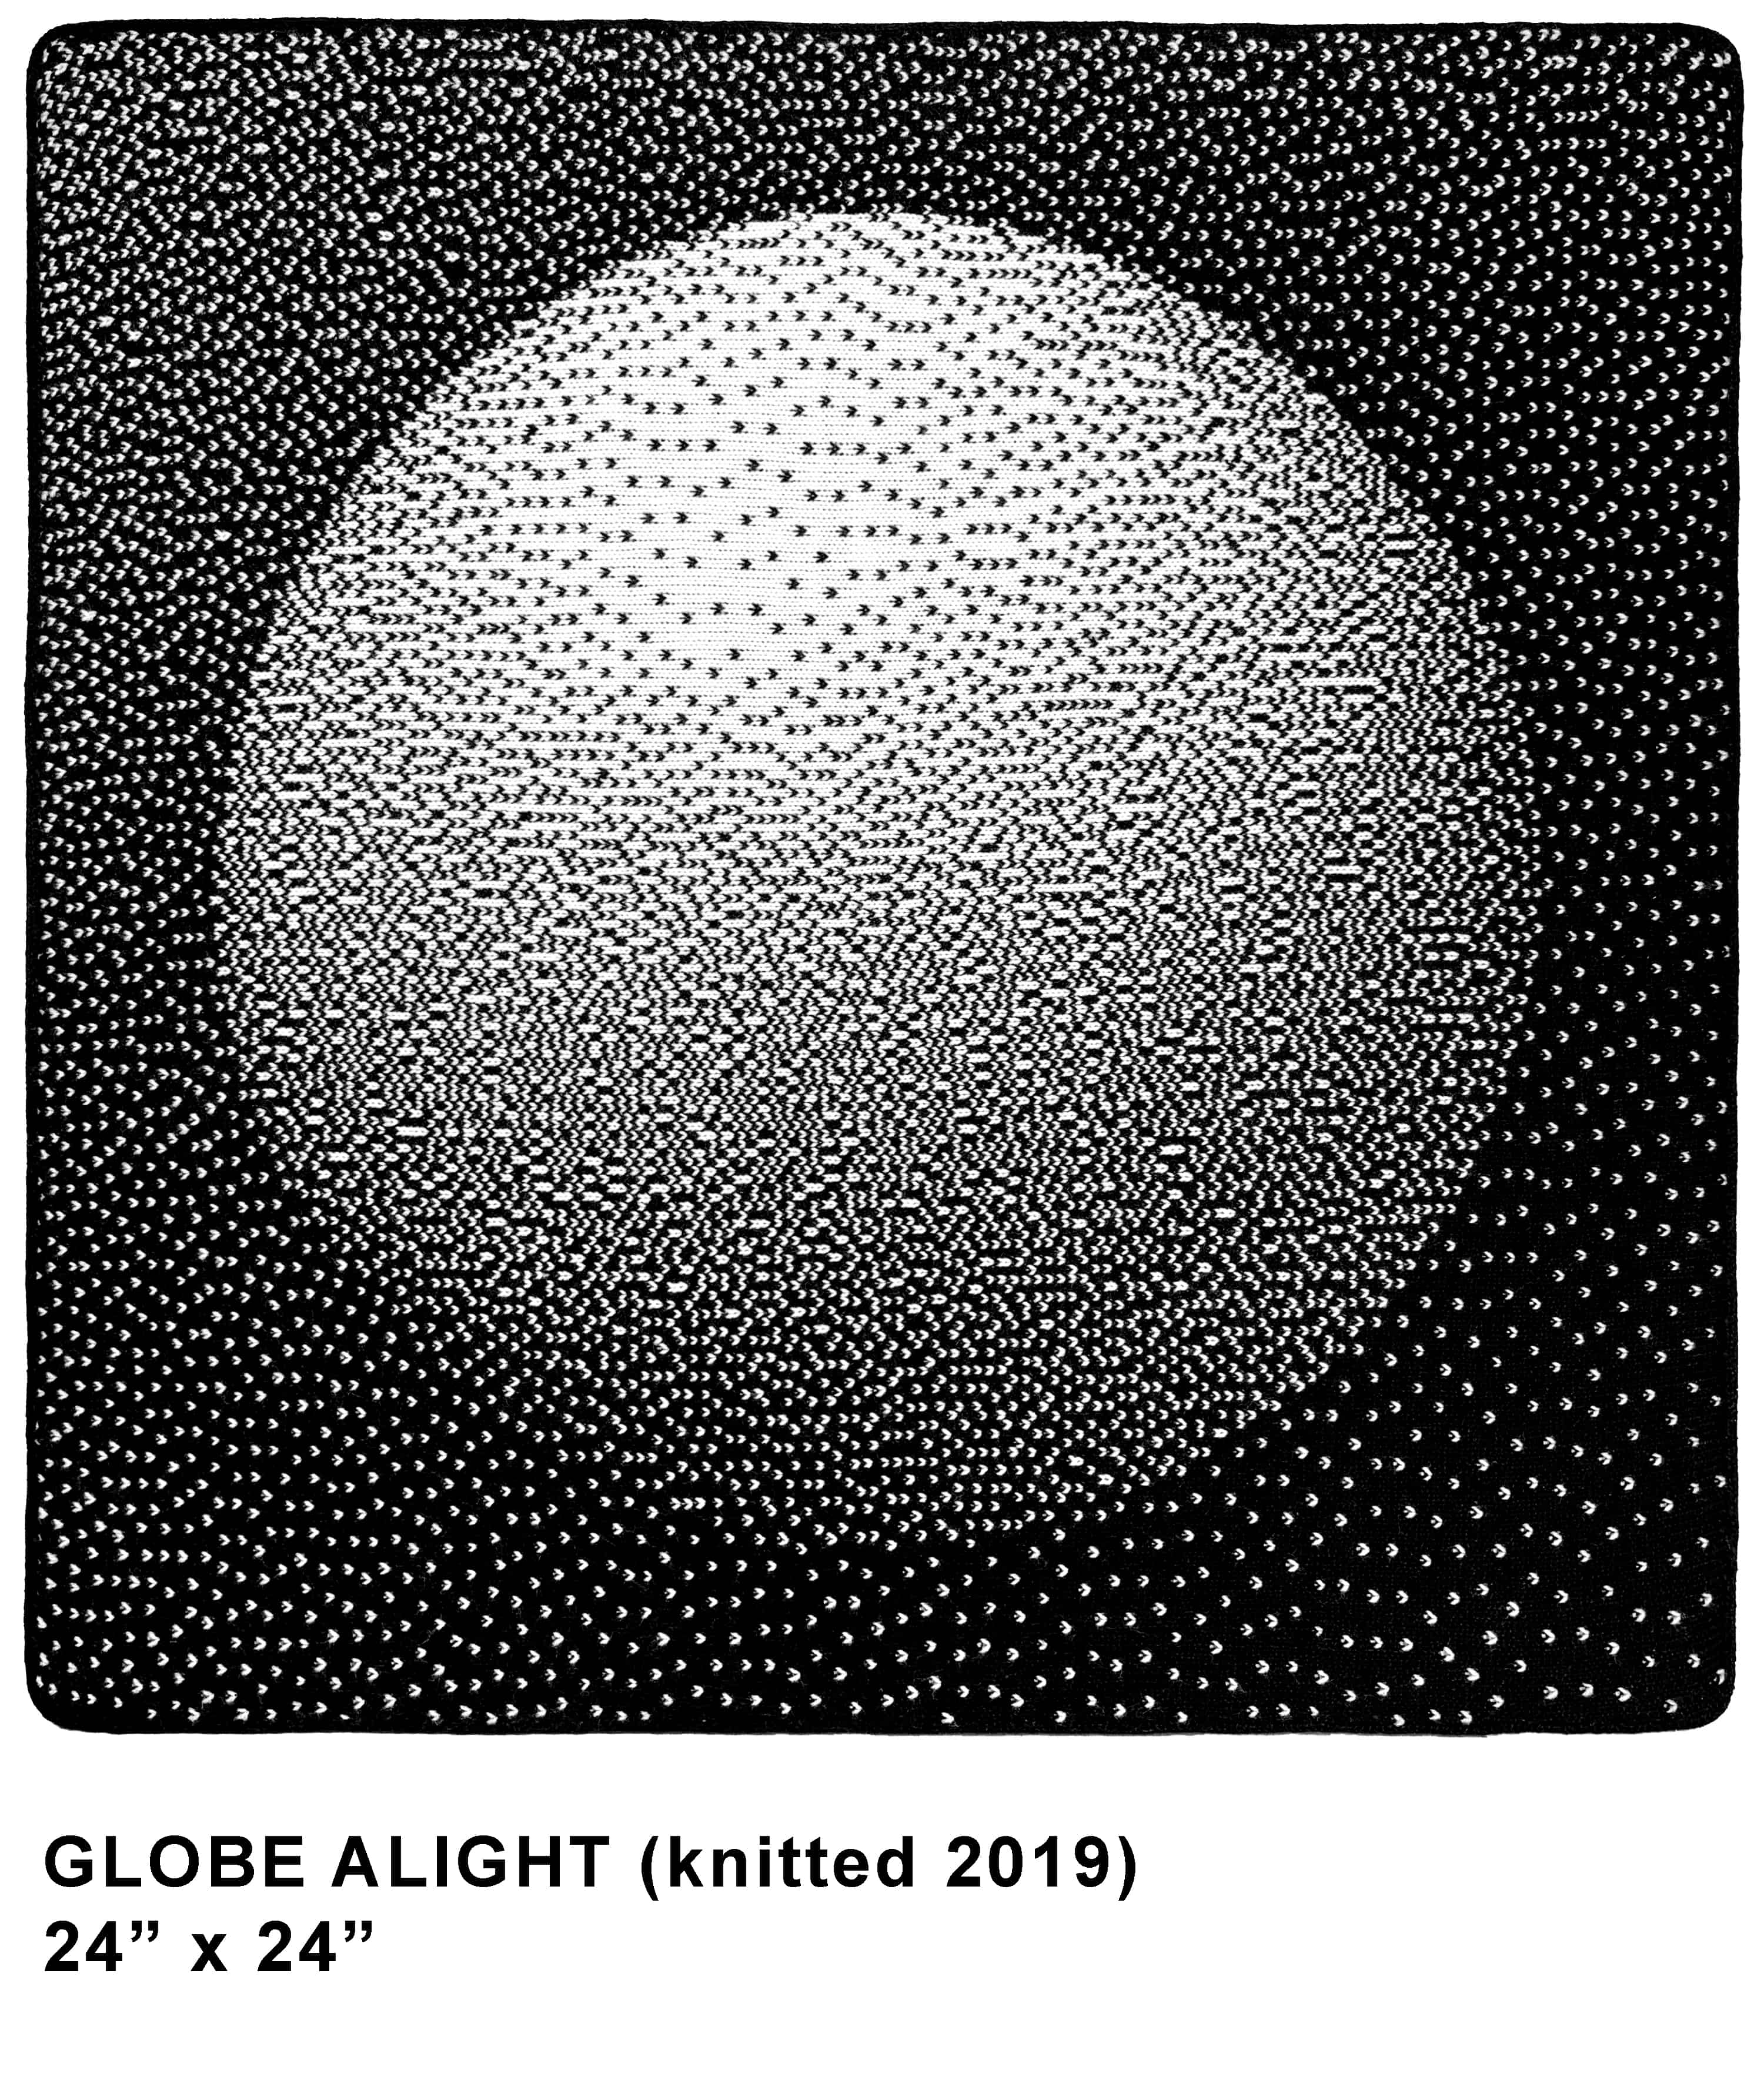 GLOBE ALIGHT knitted template